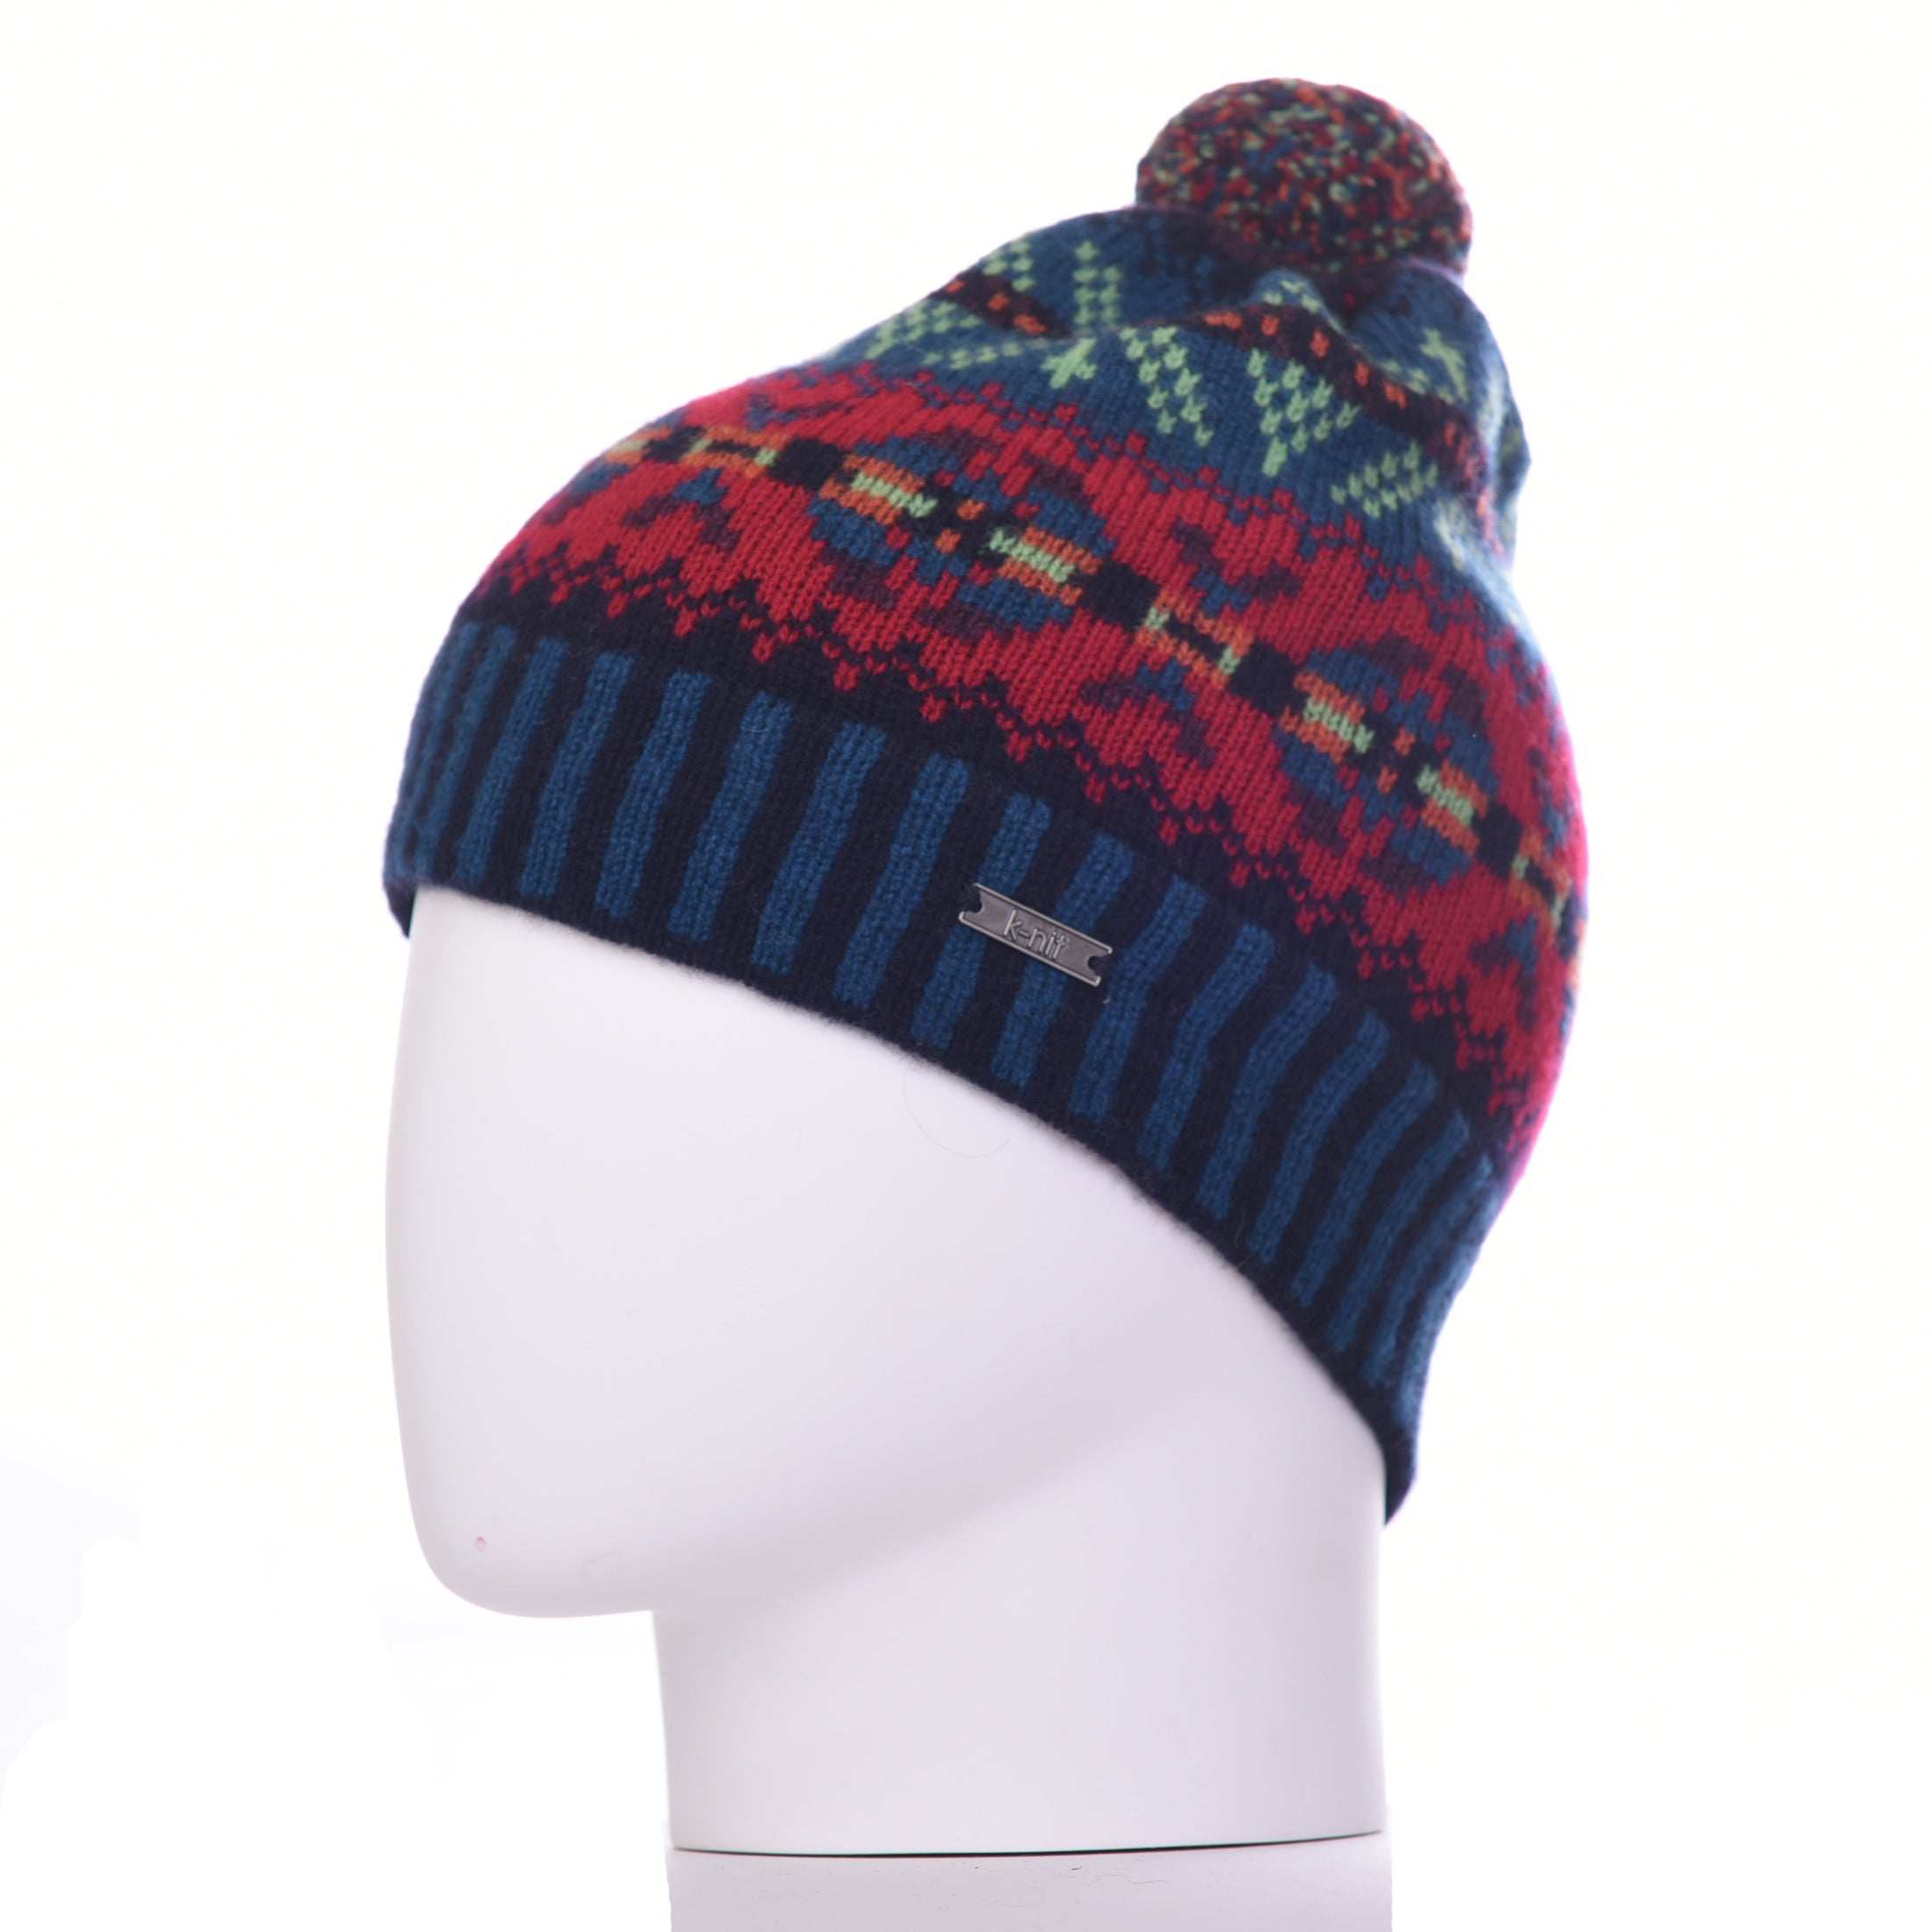 Burster Merino Wool Bobble Beanie